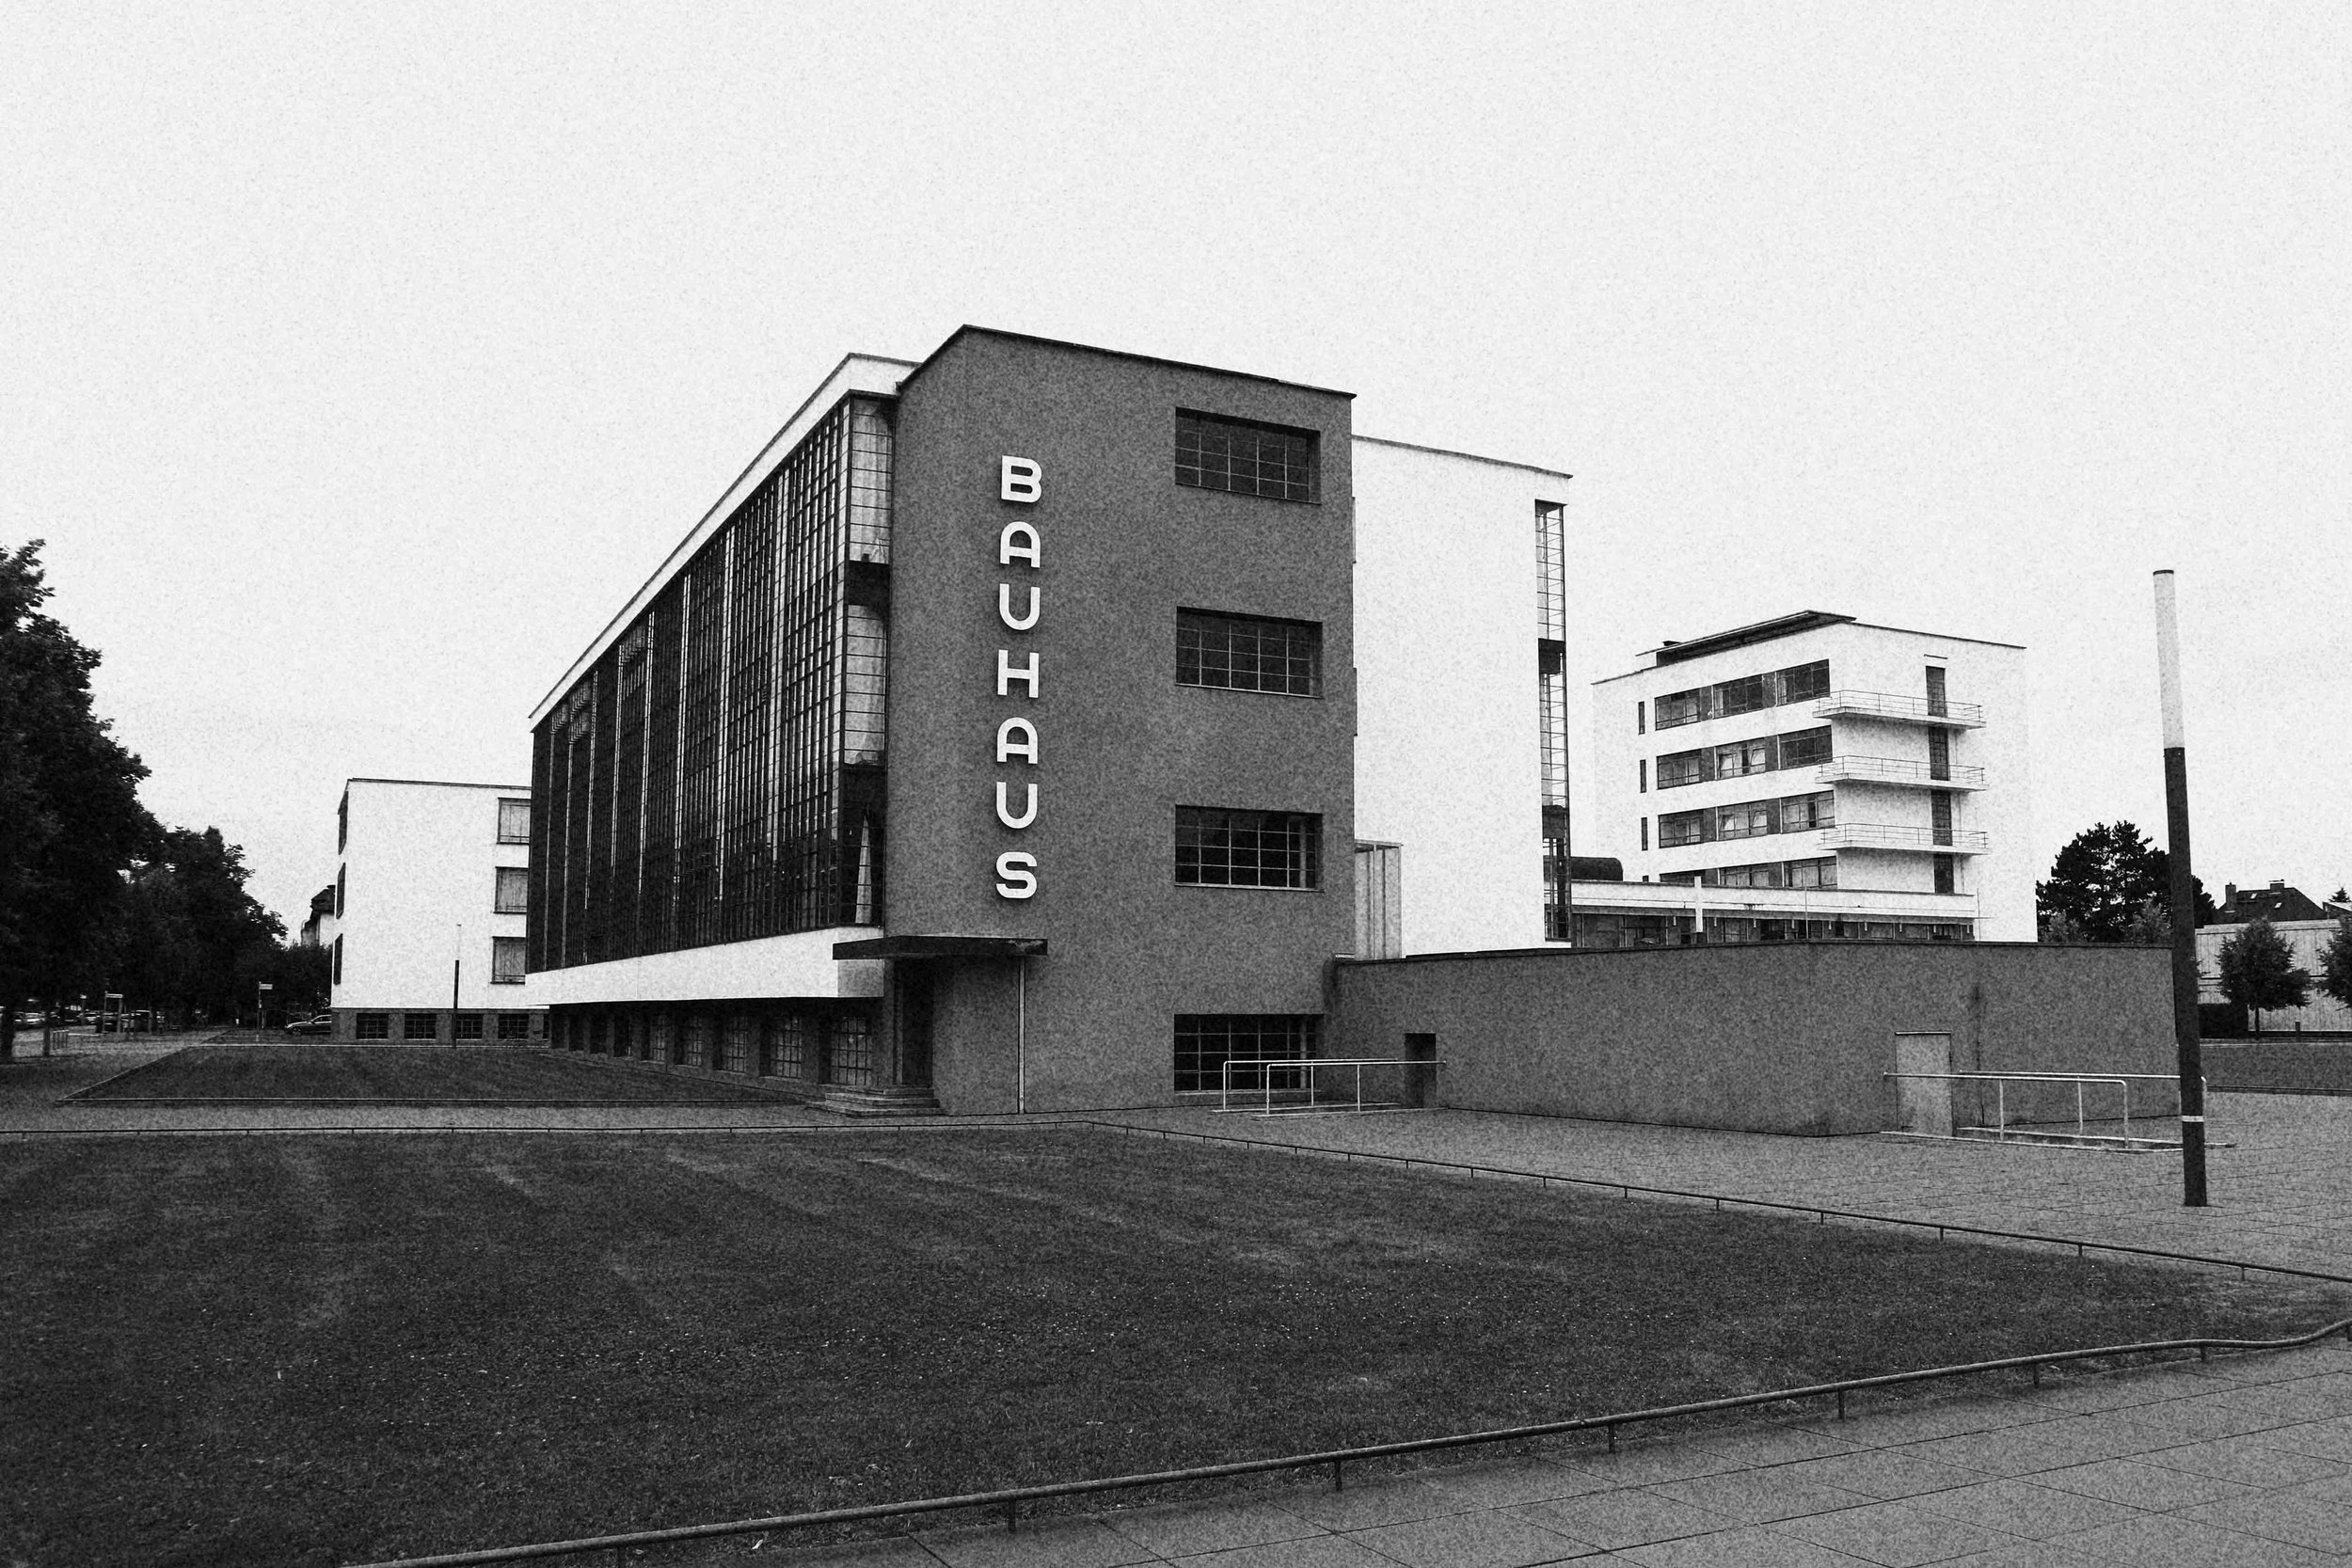 Sitting idle on a quiet street, the Bauhaus School